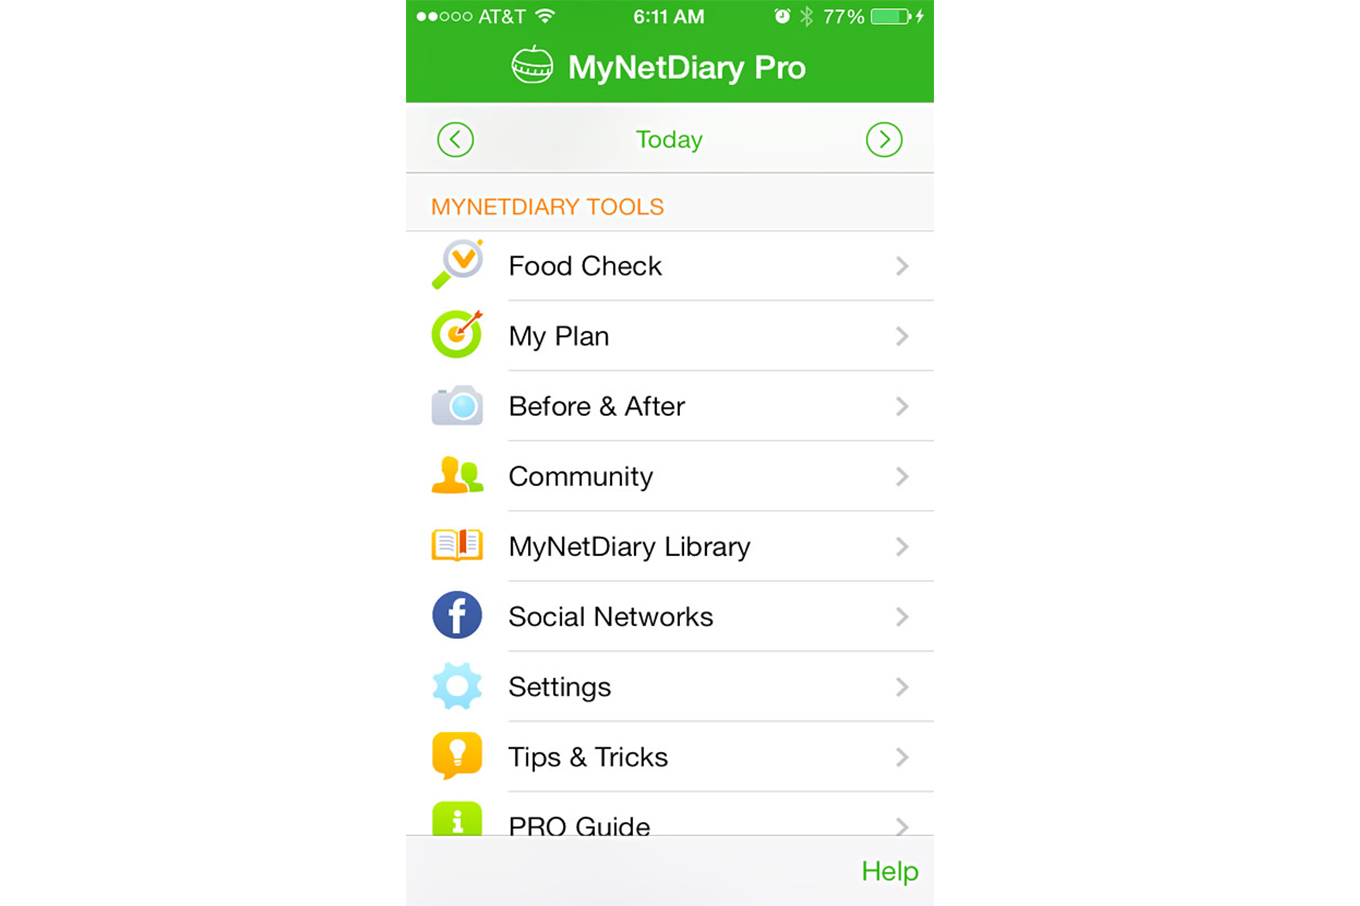 MyNetDiary Calorie Counter PRO Updated for iOS8 with HealthKit Integration